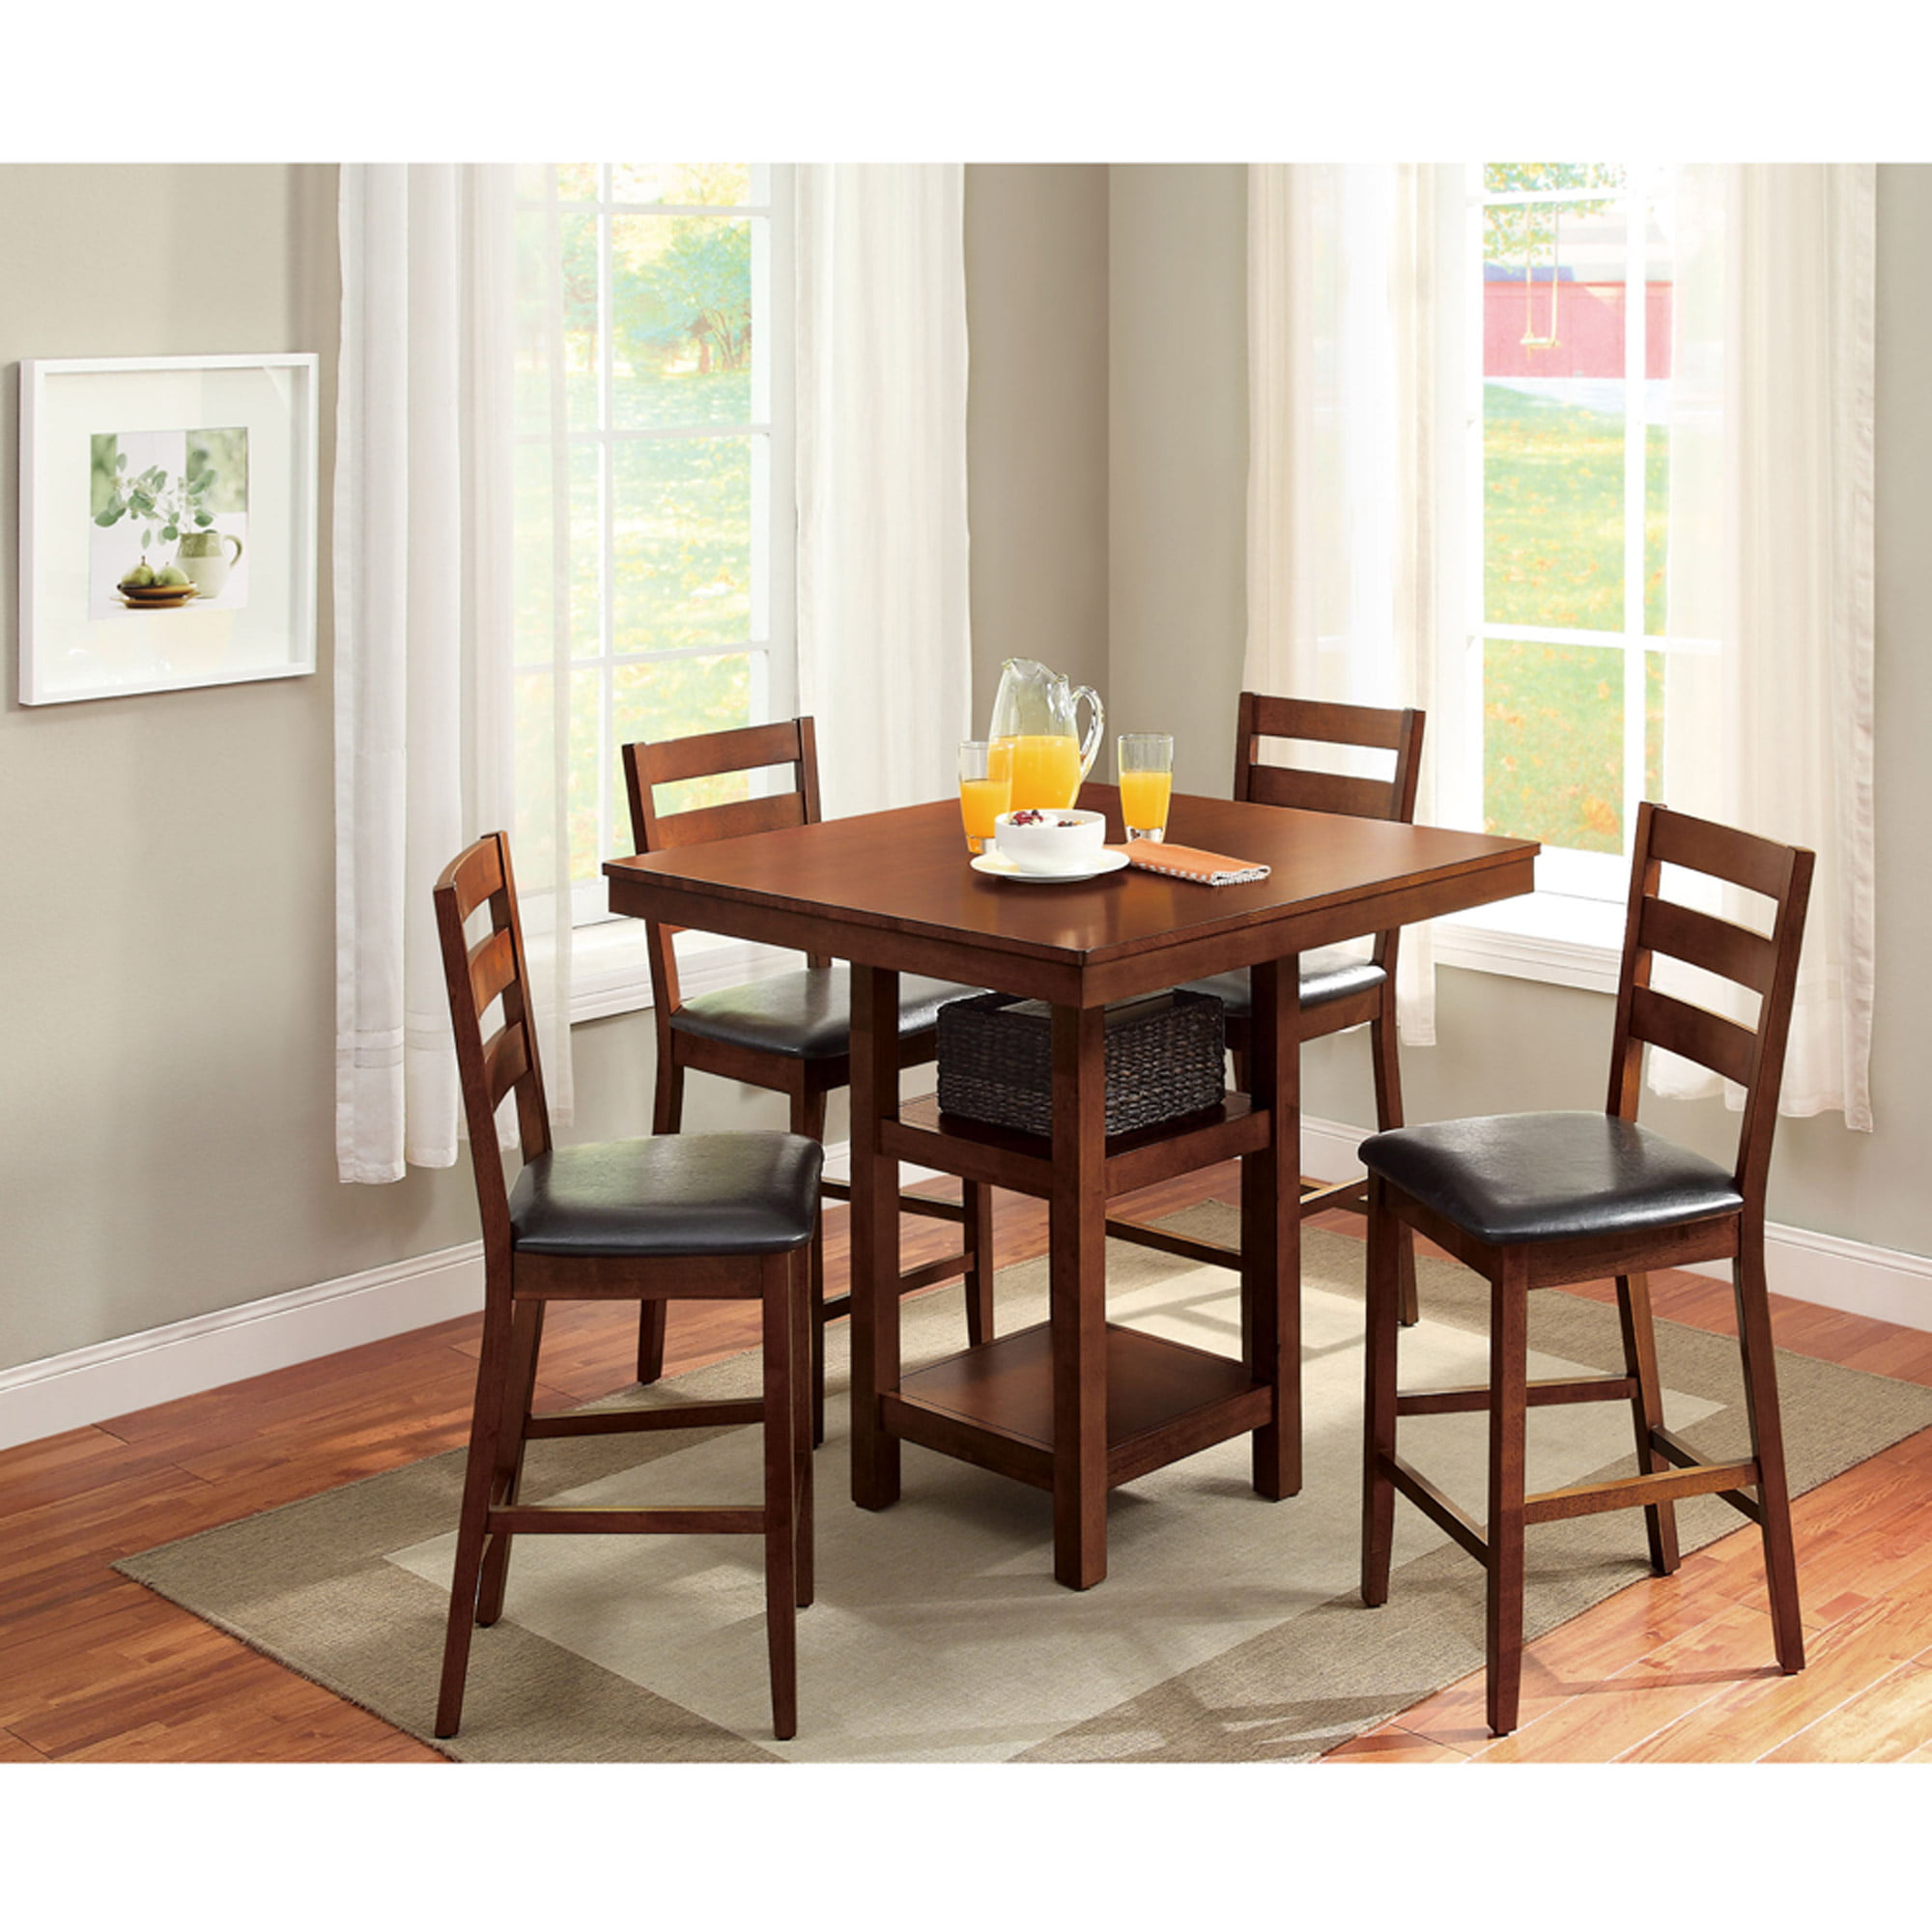 Dining Room Table Set Custom Kitchen & Dining Furniture  Walmart 2017